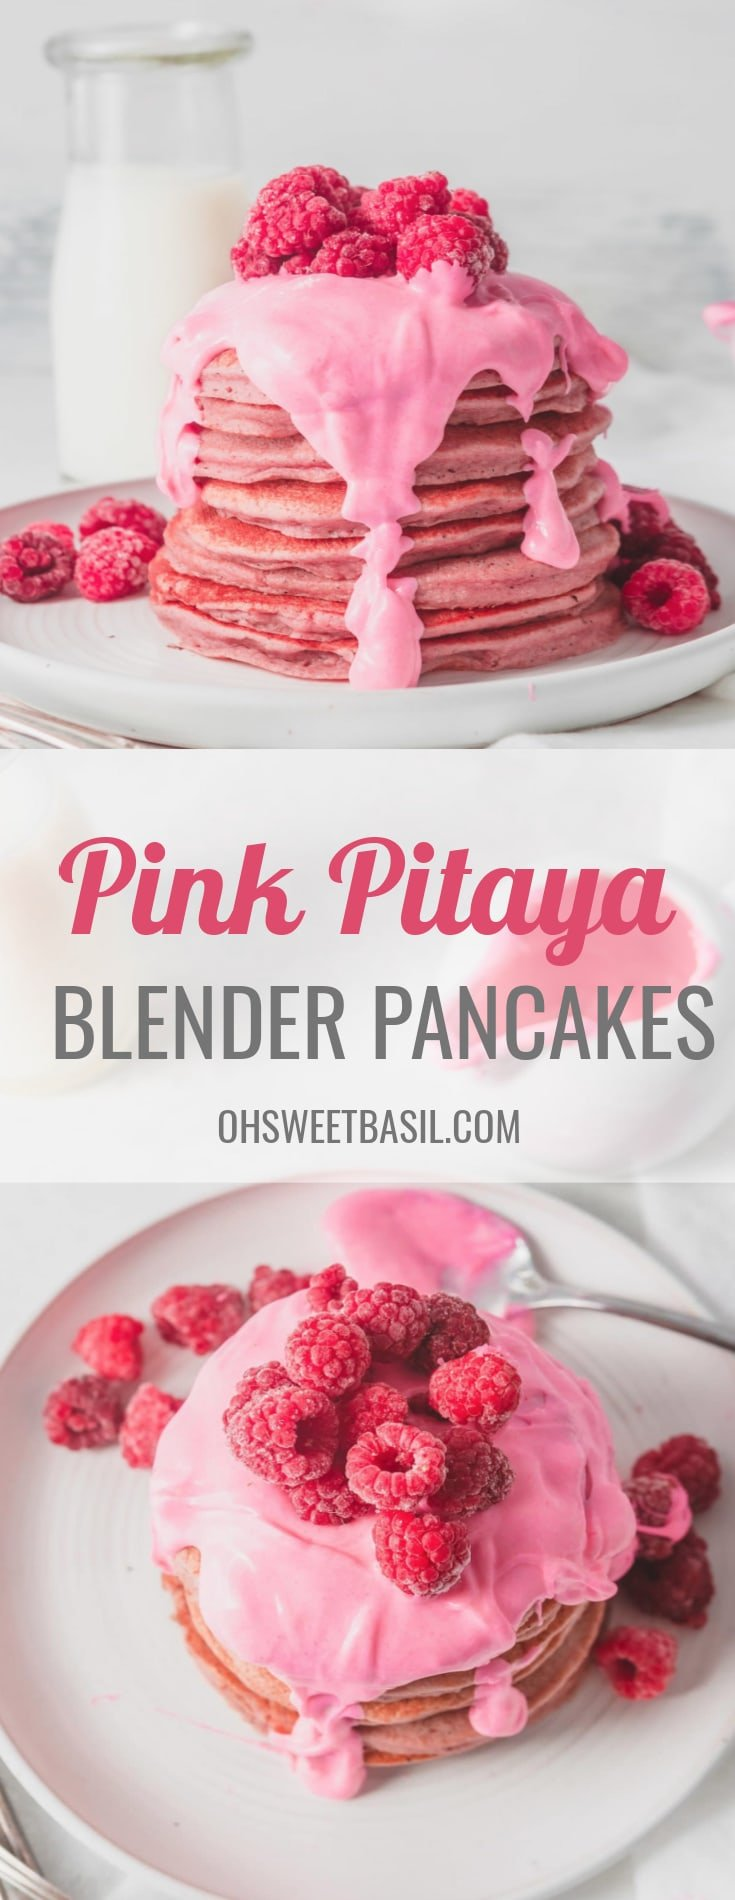 A large stack of pink pitaya pancakes with a thick pink chocolate sauce poured over the top. There are fresh raspberries on top of the sauce and raspberries on the plate around the pancakes.